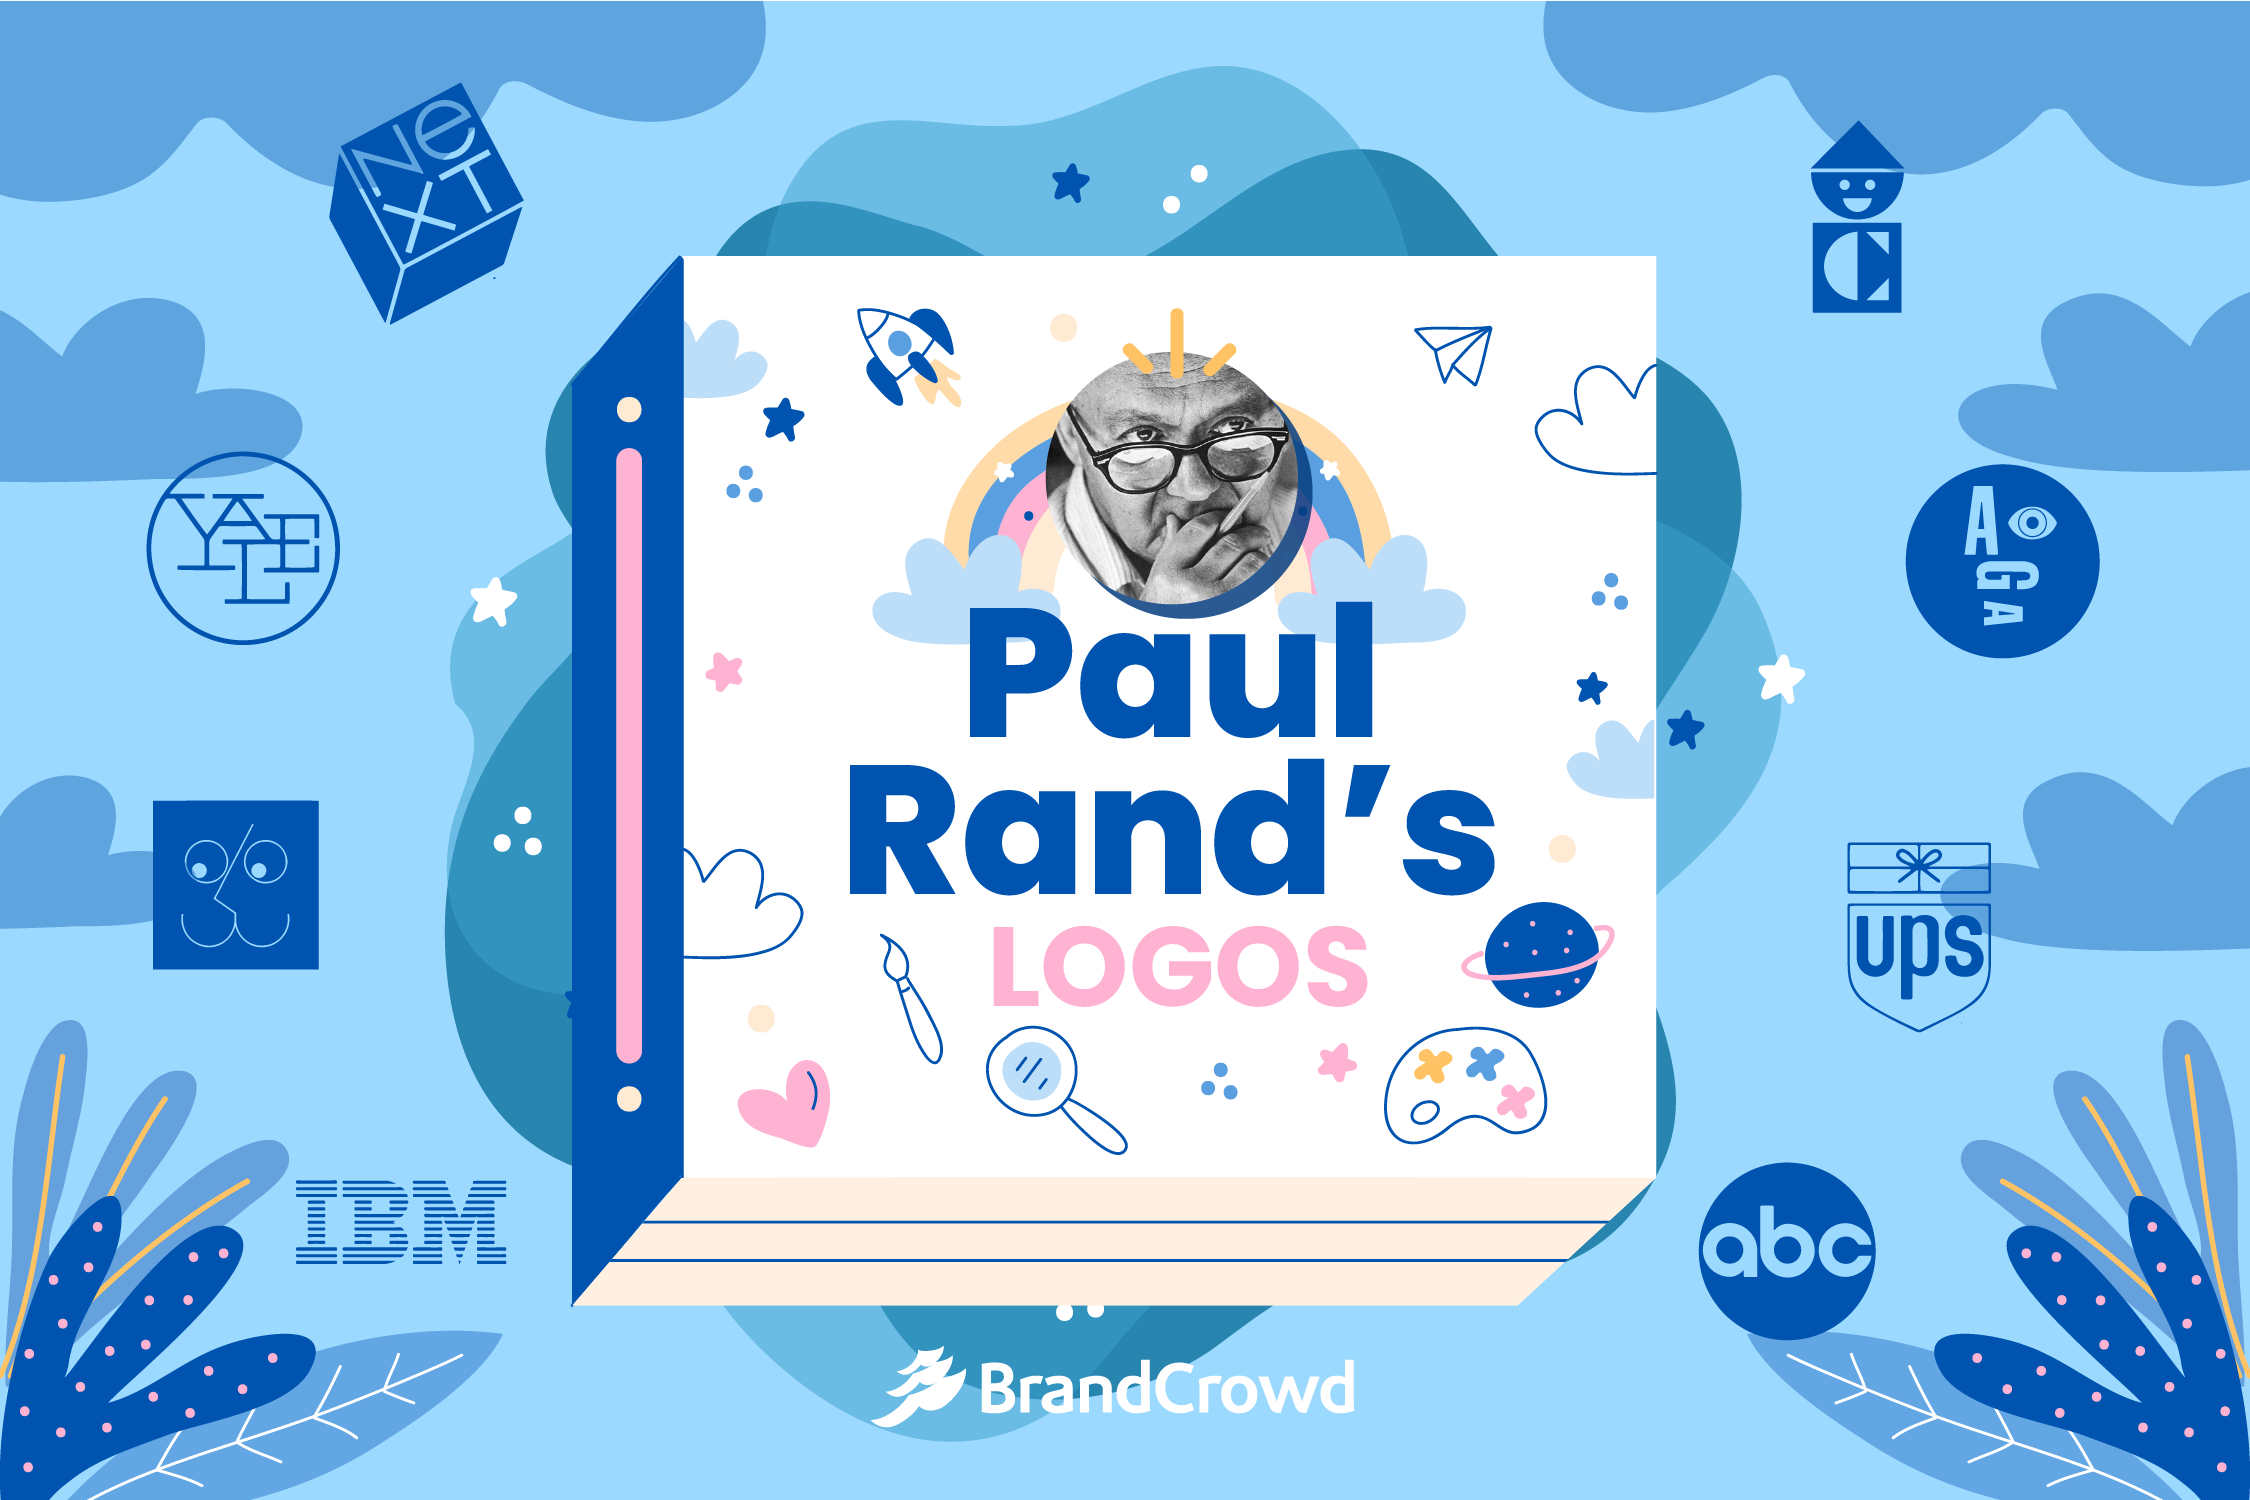 the-header-is-color-blue-with-the-header-featuring-the-blog-title-paul-rands-logos-and-a-photo-of-the-iconic-designer